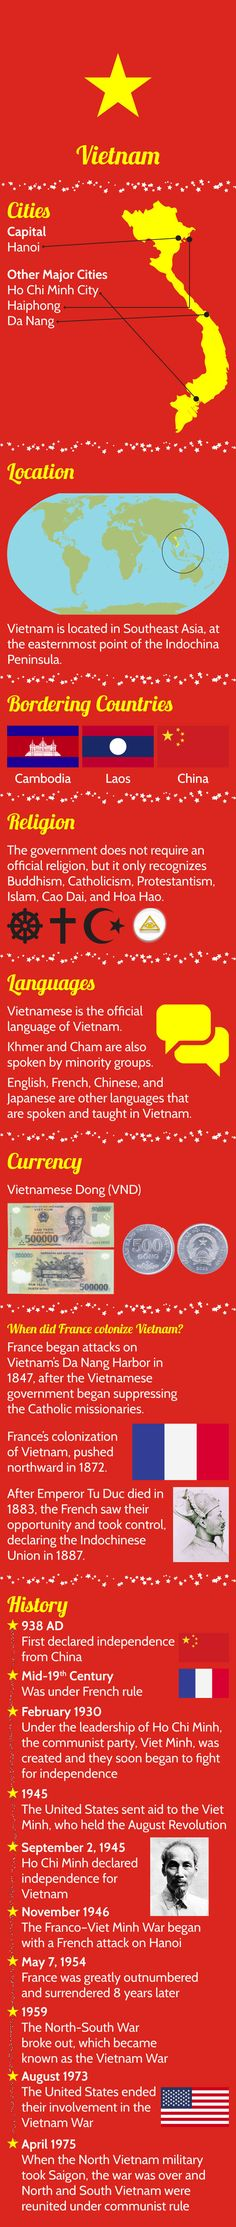 Infographic Of Vietnam Facts